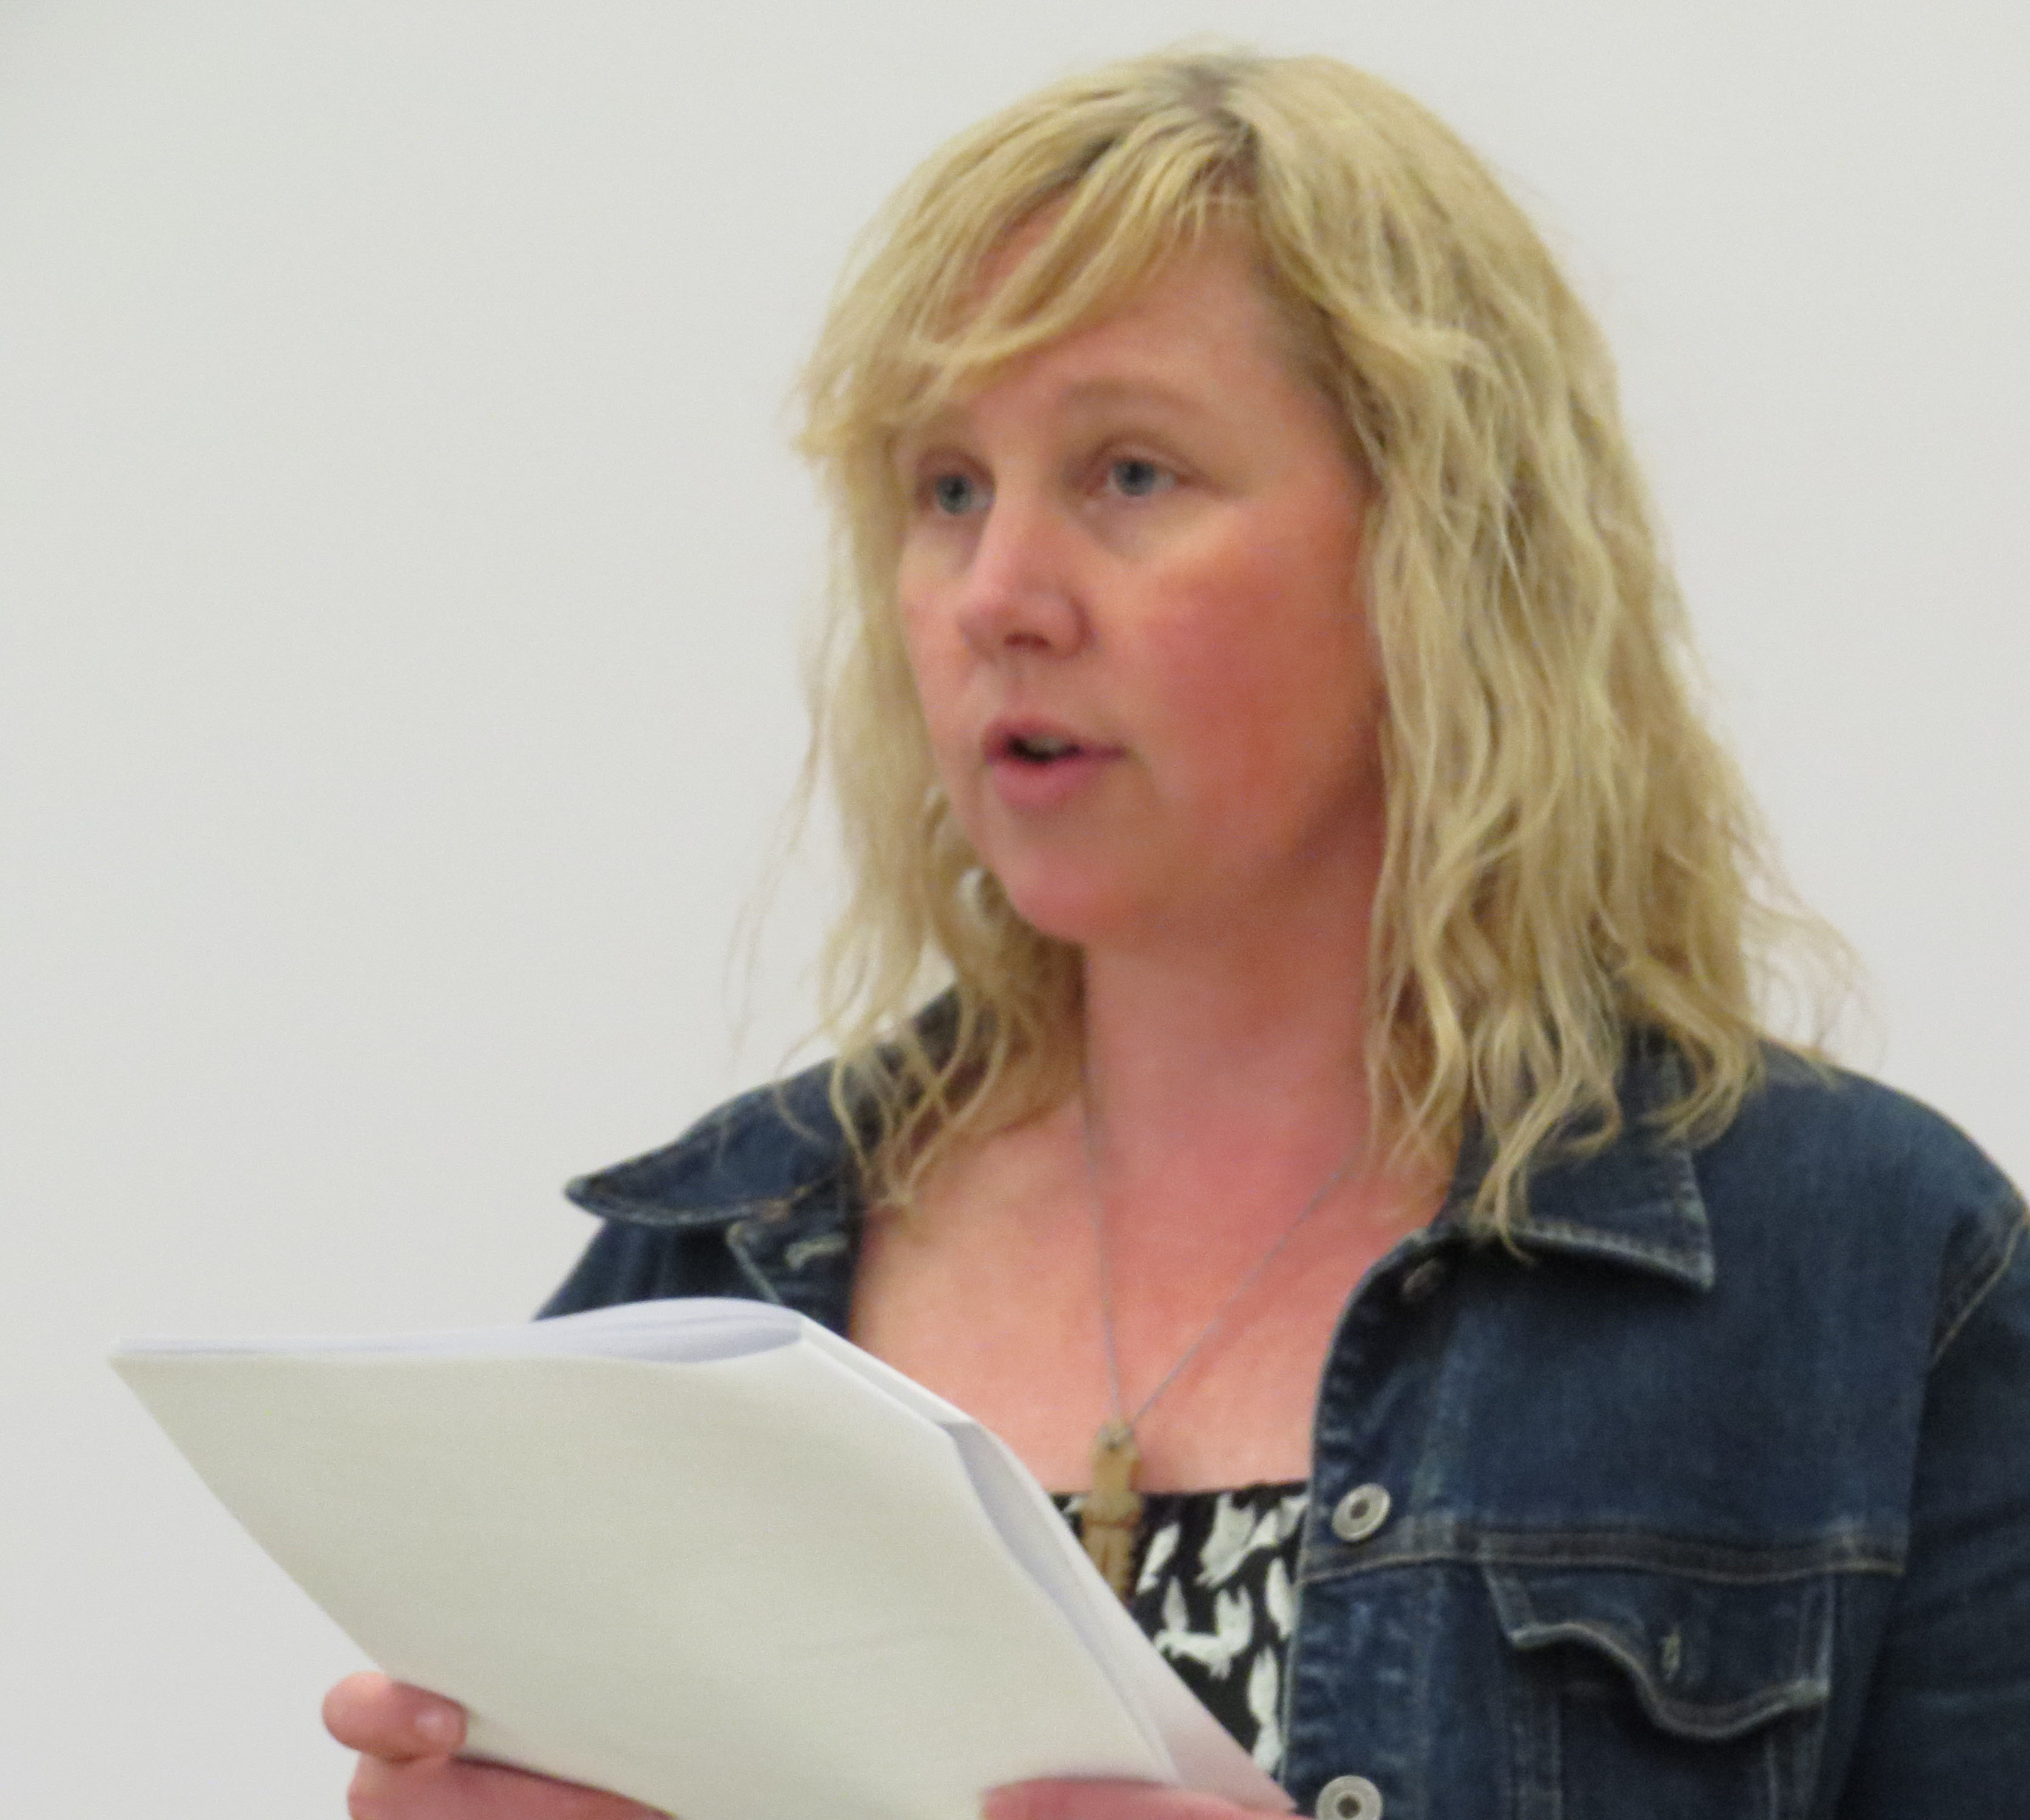 Rosemary Curry, Narrator for 1784